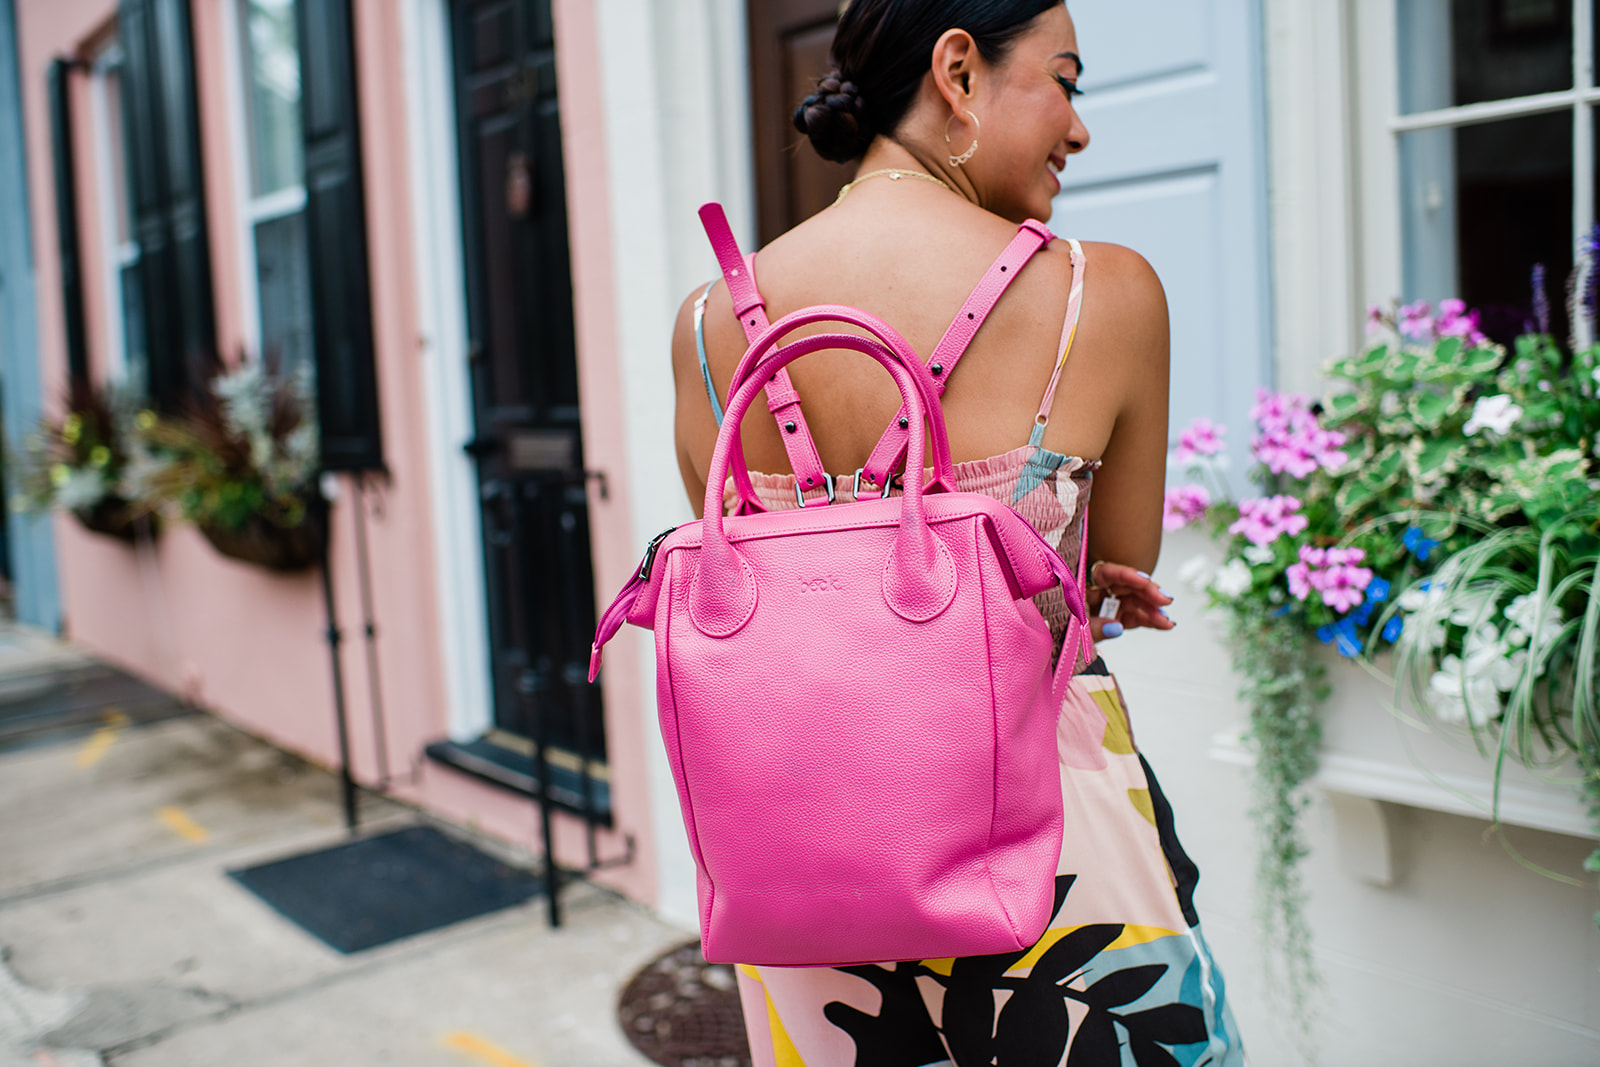 national-handbag-day-going-off-trend-beck-bags-leigh-moose